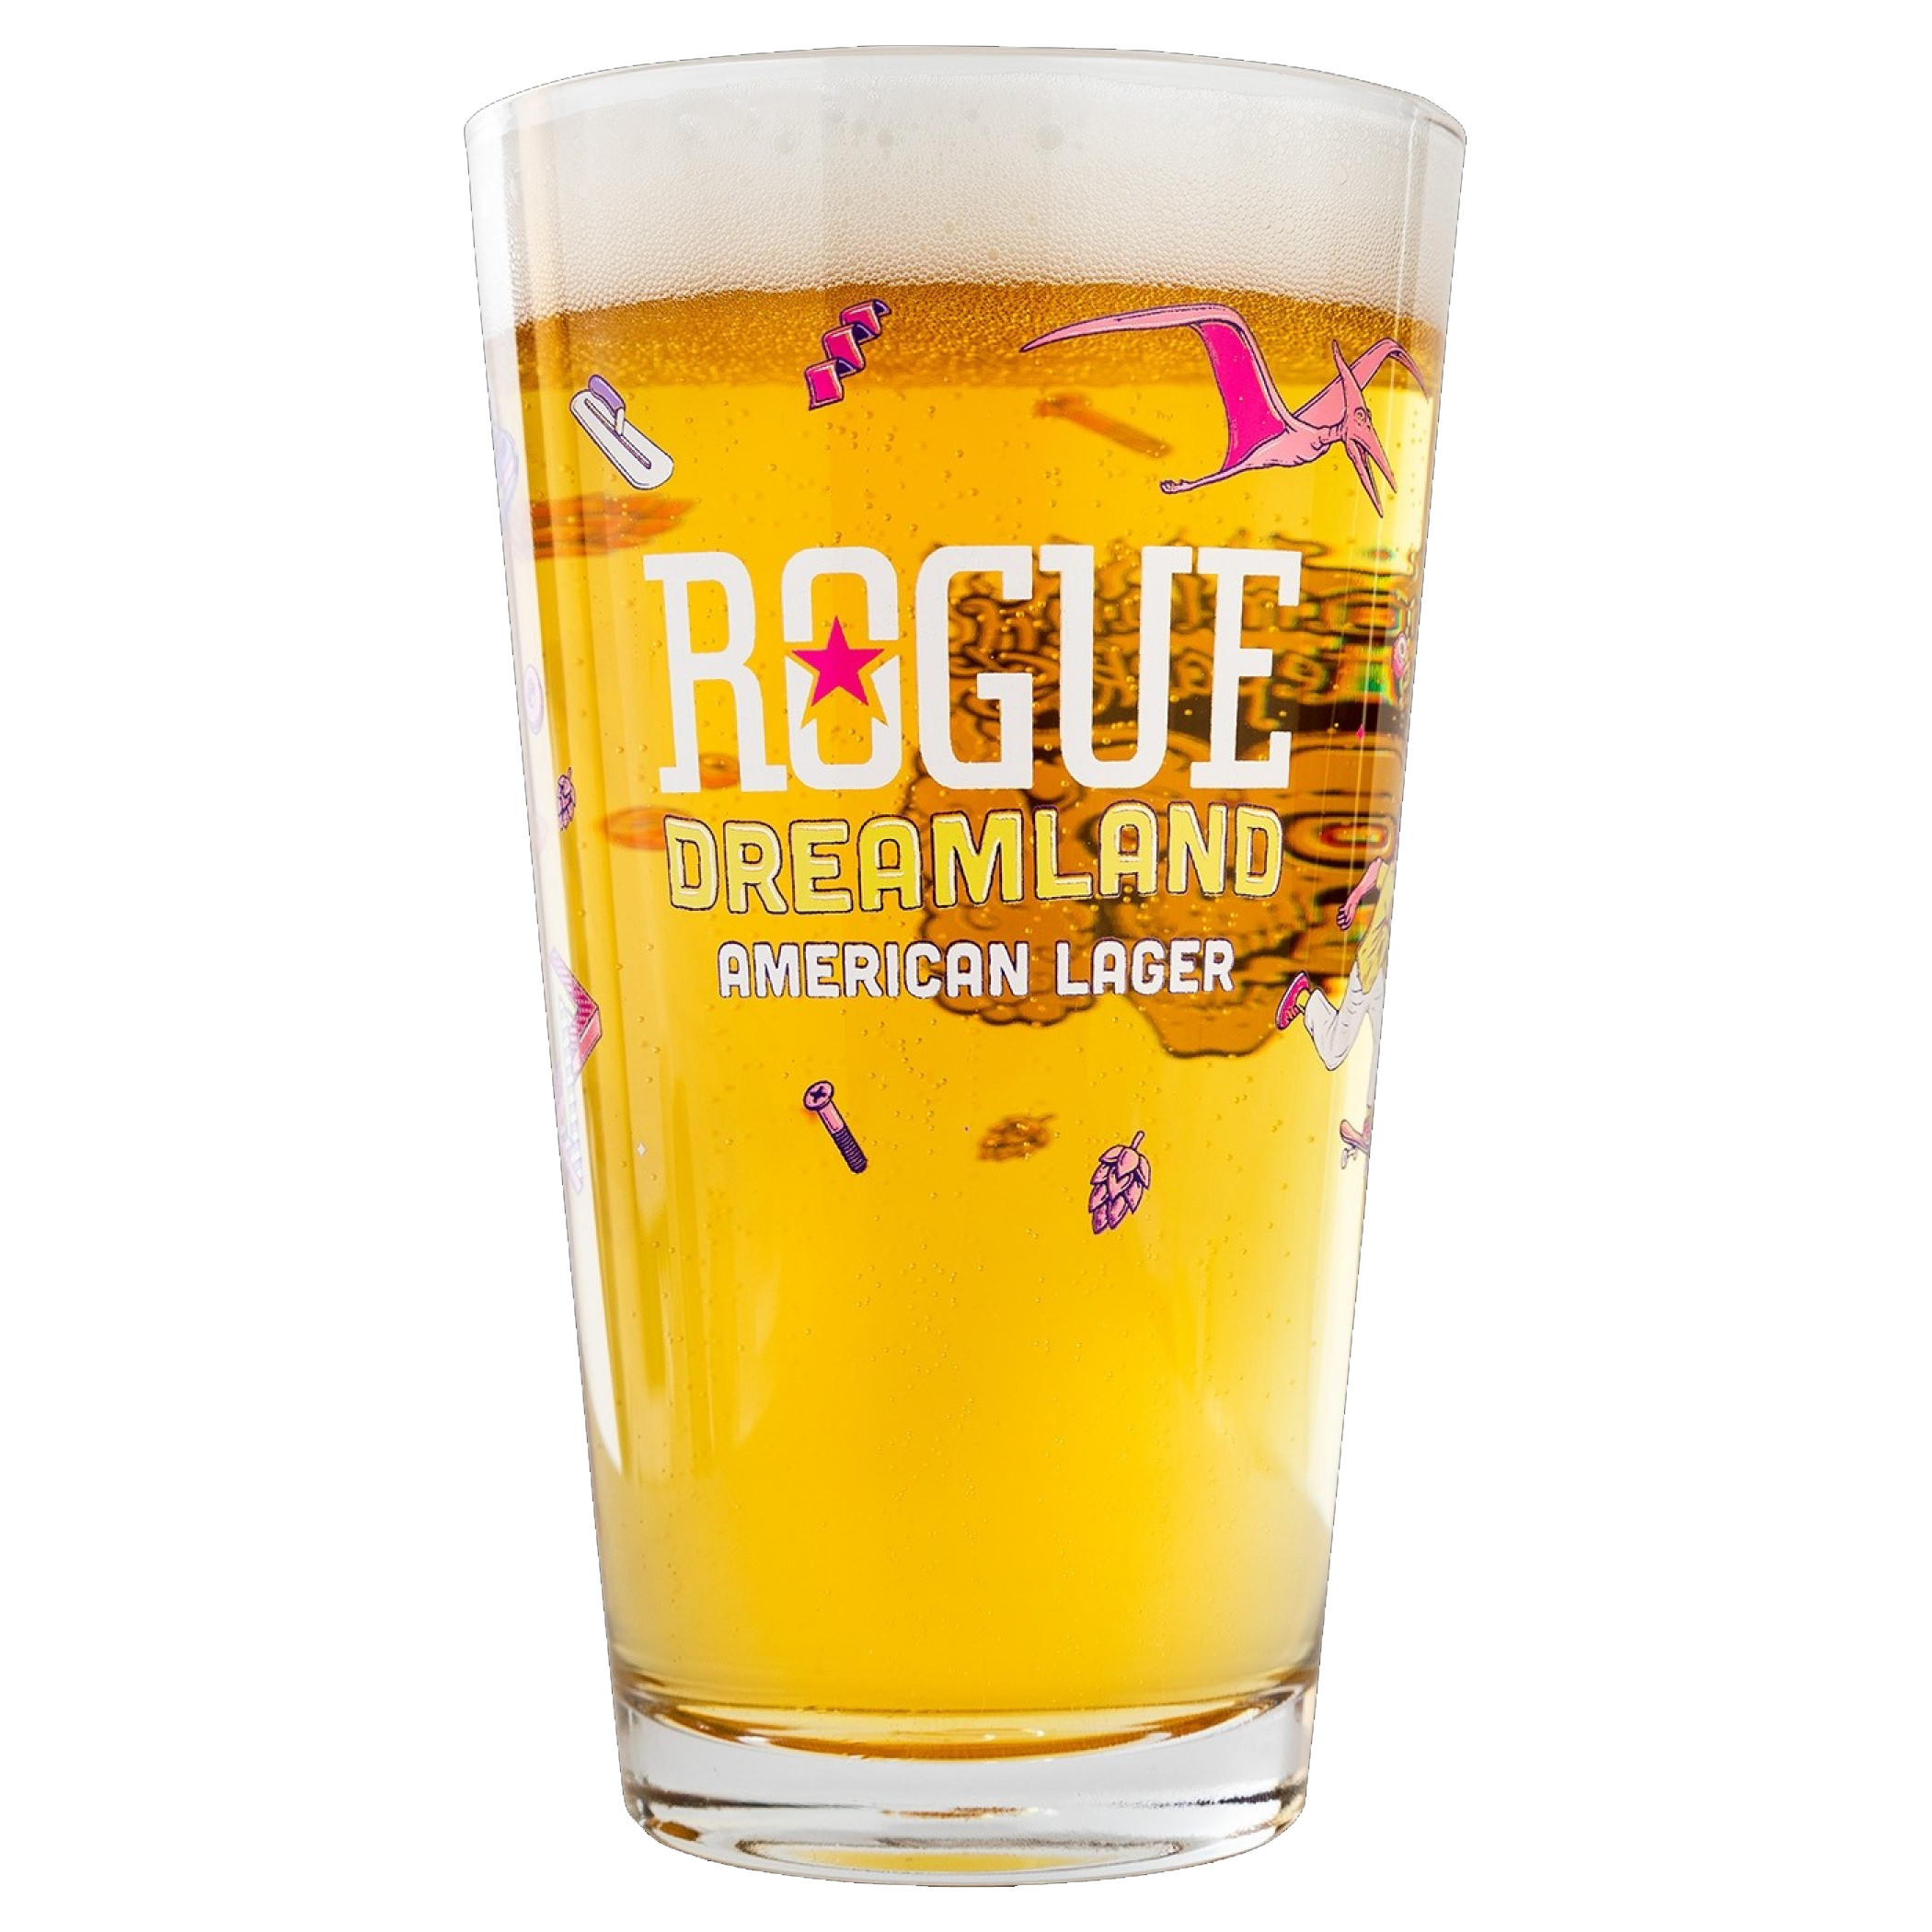 Rogue Dreamland American Lager Pint Glass